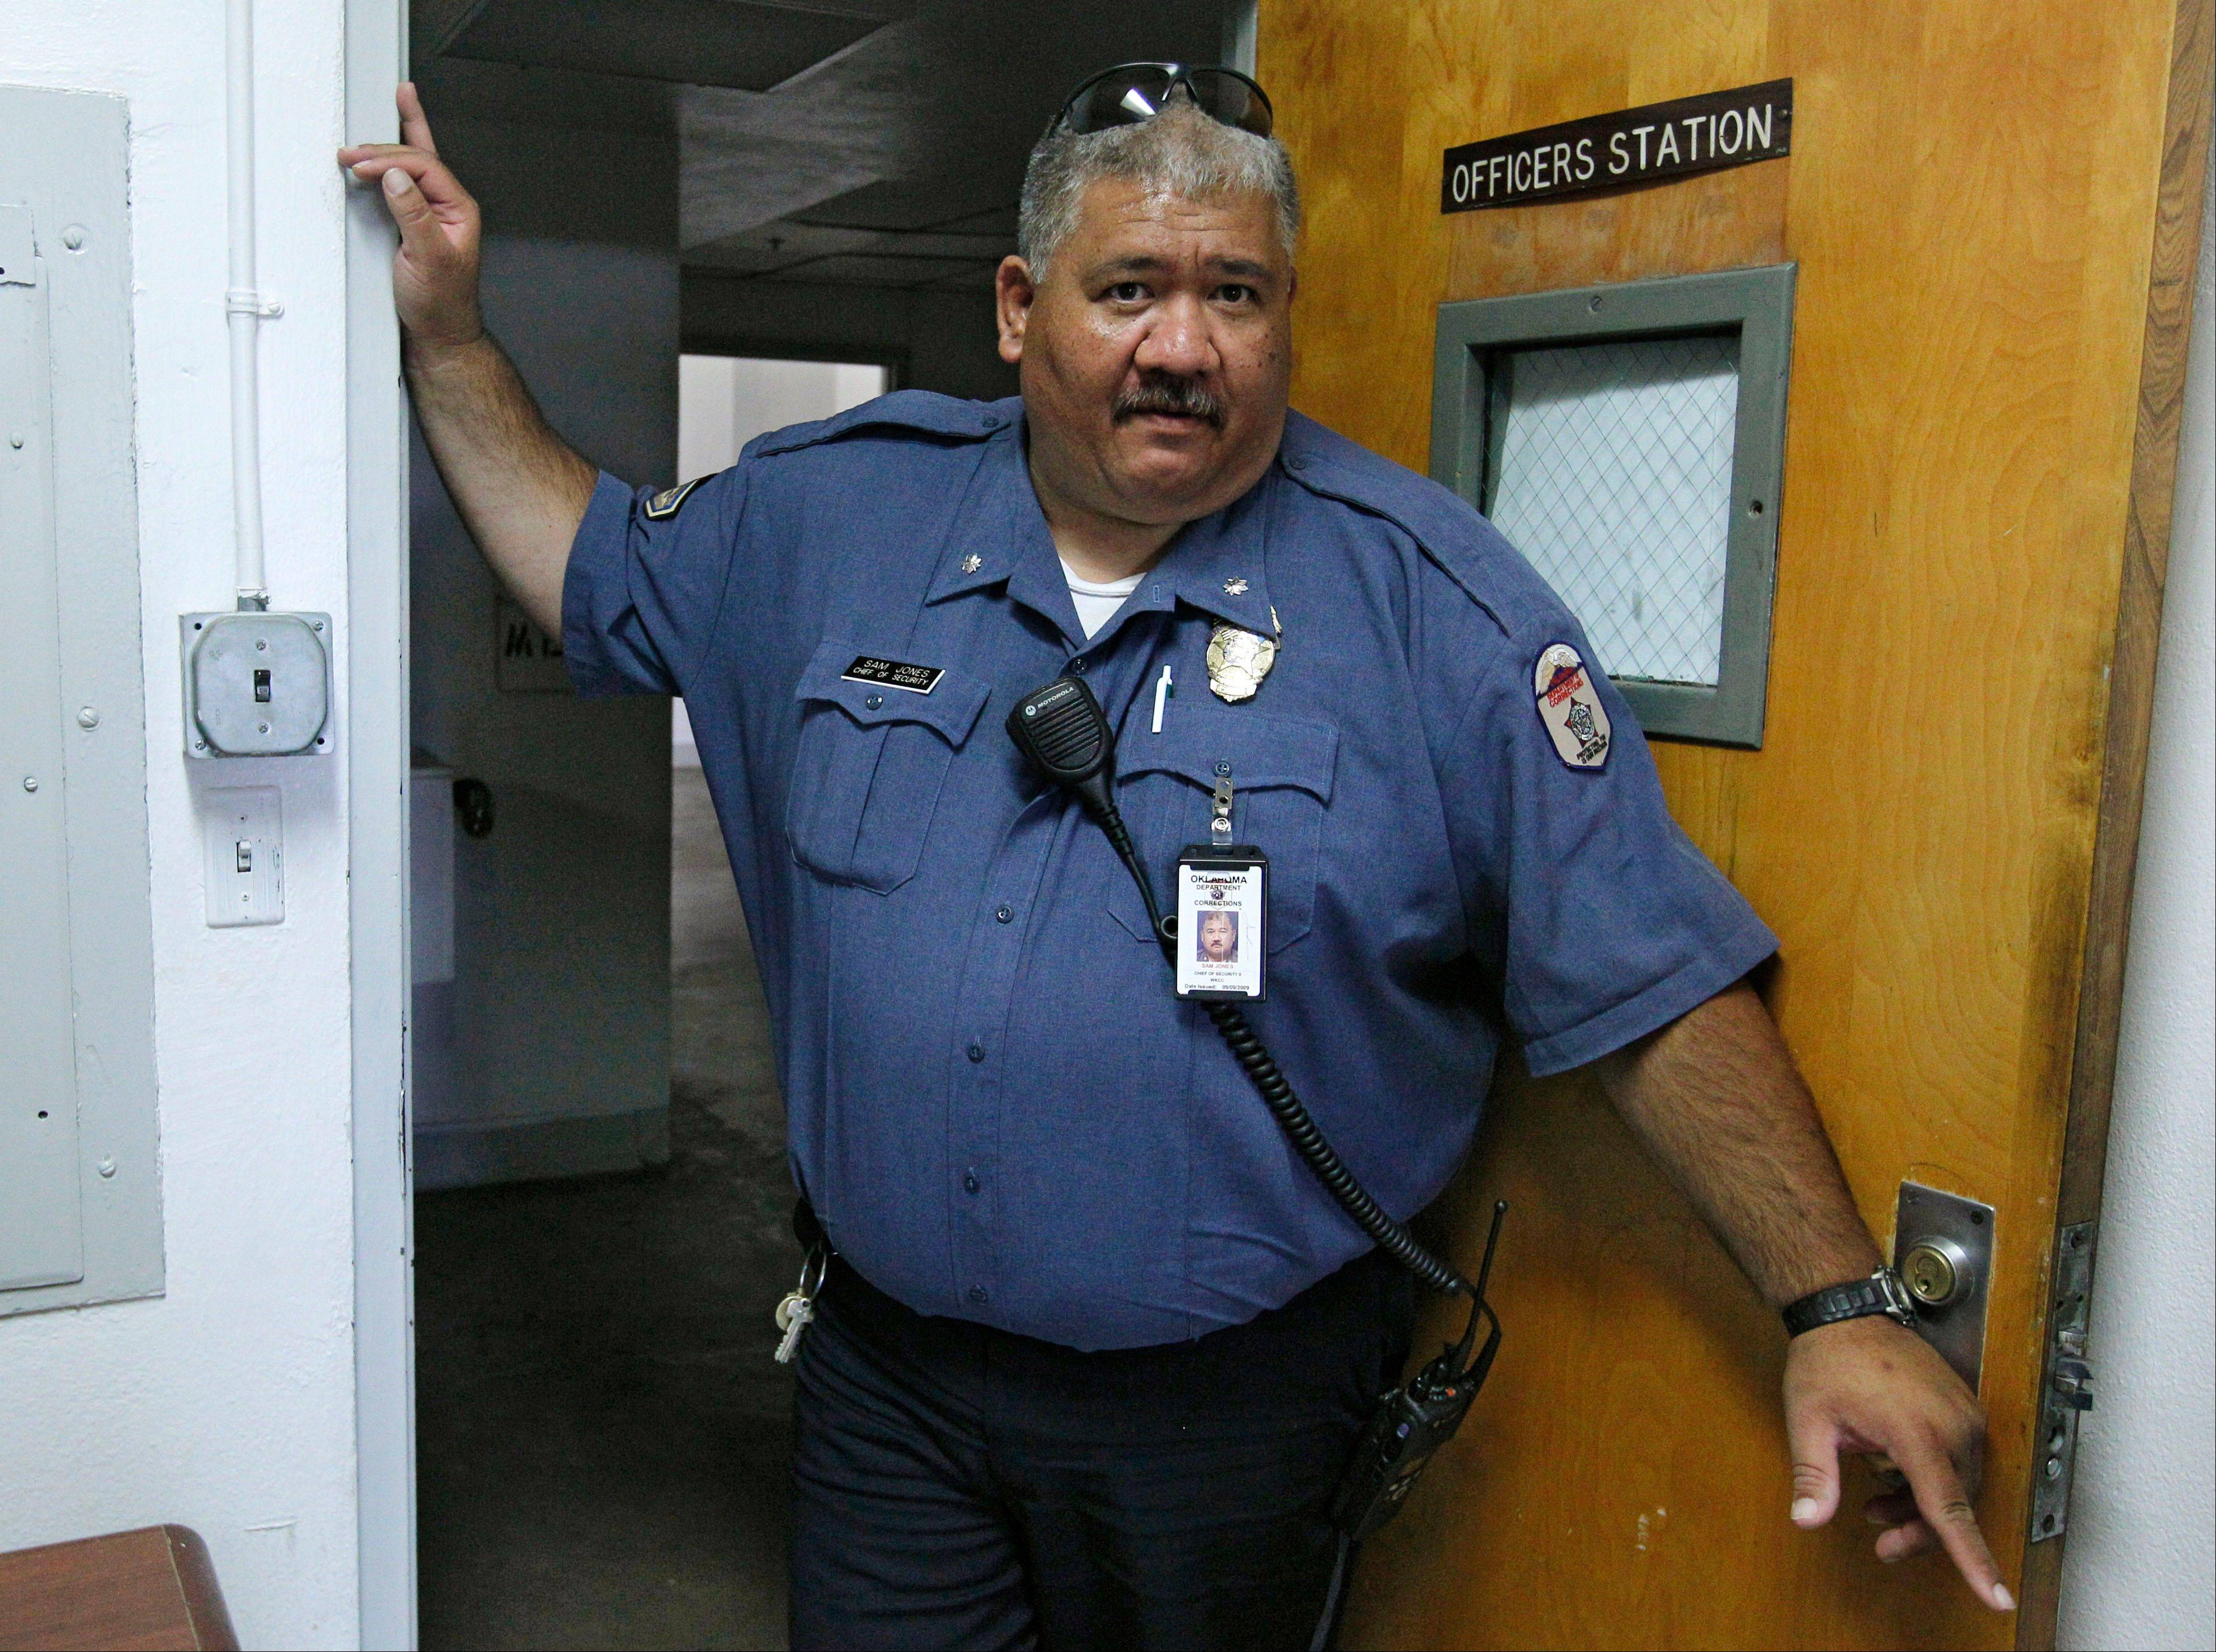 Sam Jones, chief of security at the William S. Key Correctional Center, is pictured during an interview at an officer's workstation in Ft. Supply, Okla. Jones said he's lost two officers to jobs in the energy industry in just the past few months, including a 10-year veteran who worked as a supervisory sergeant.